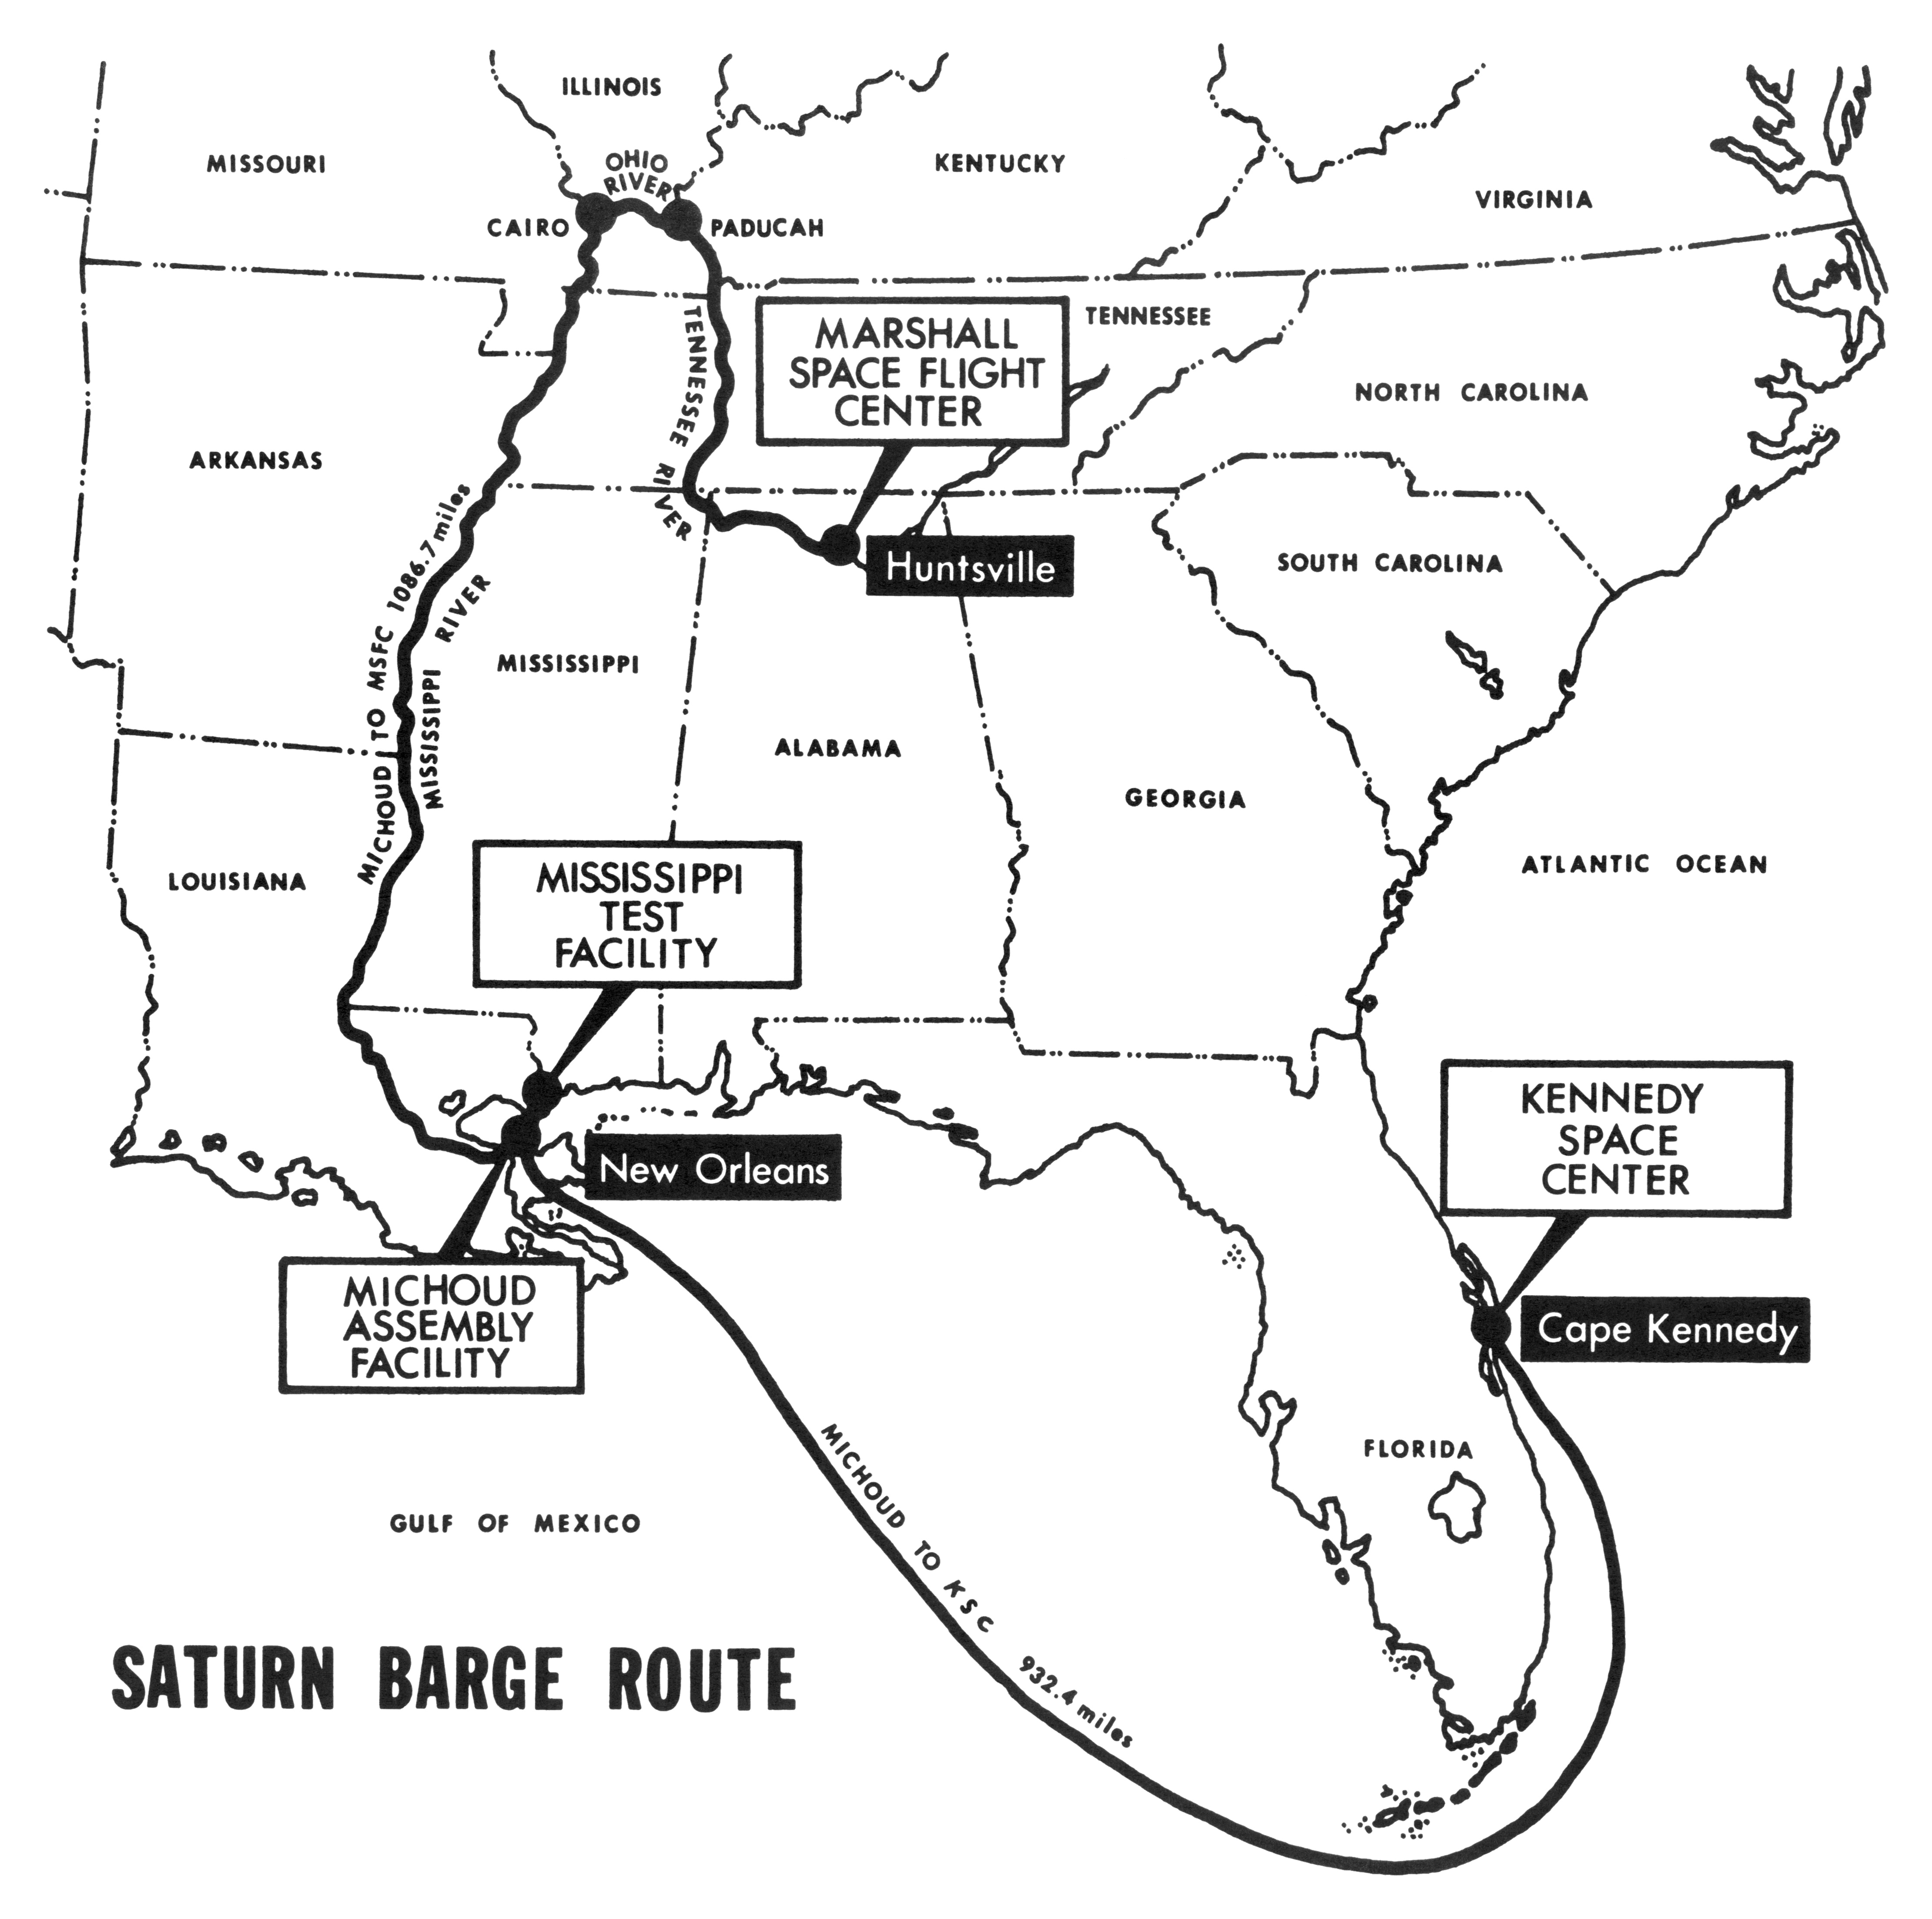 Saturn Barge Routes